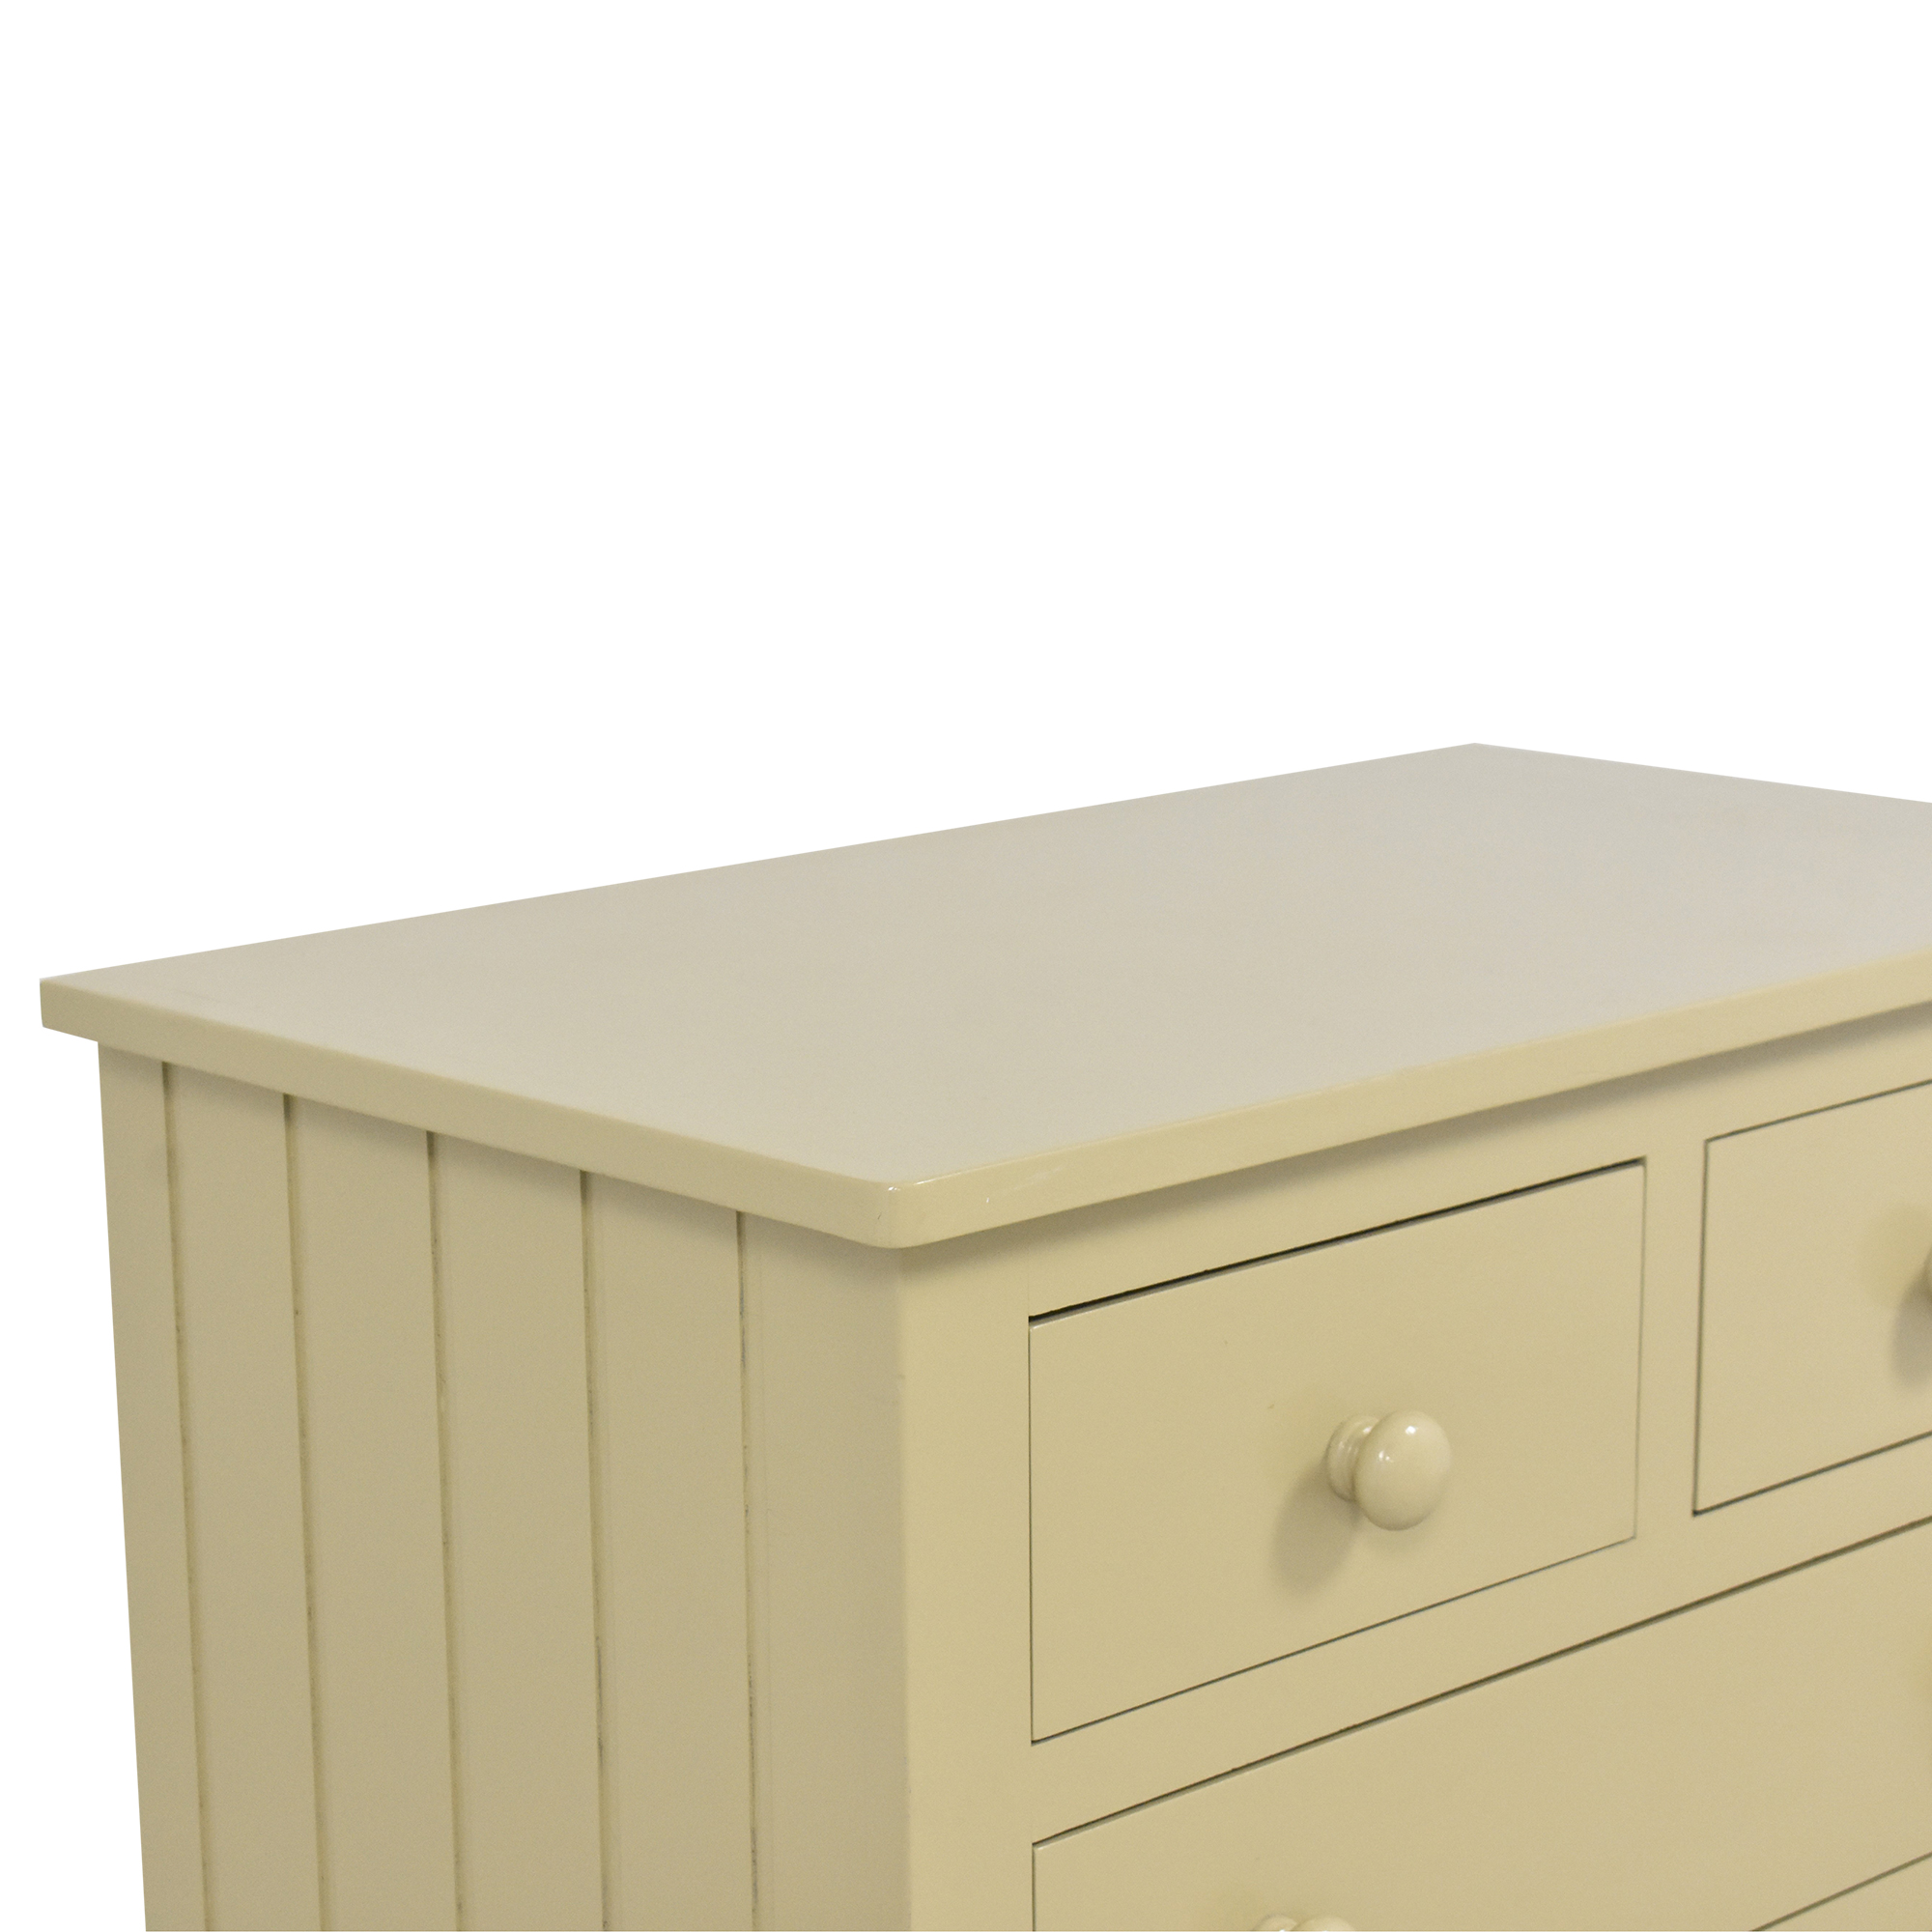 Five Drawer Chest / Dressers